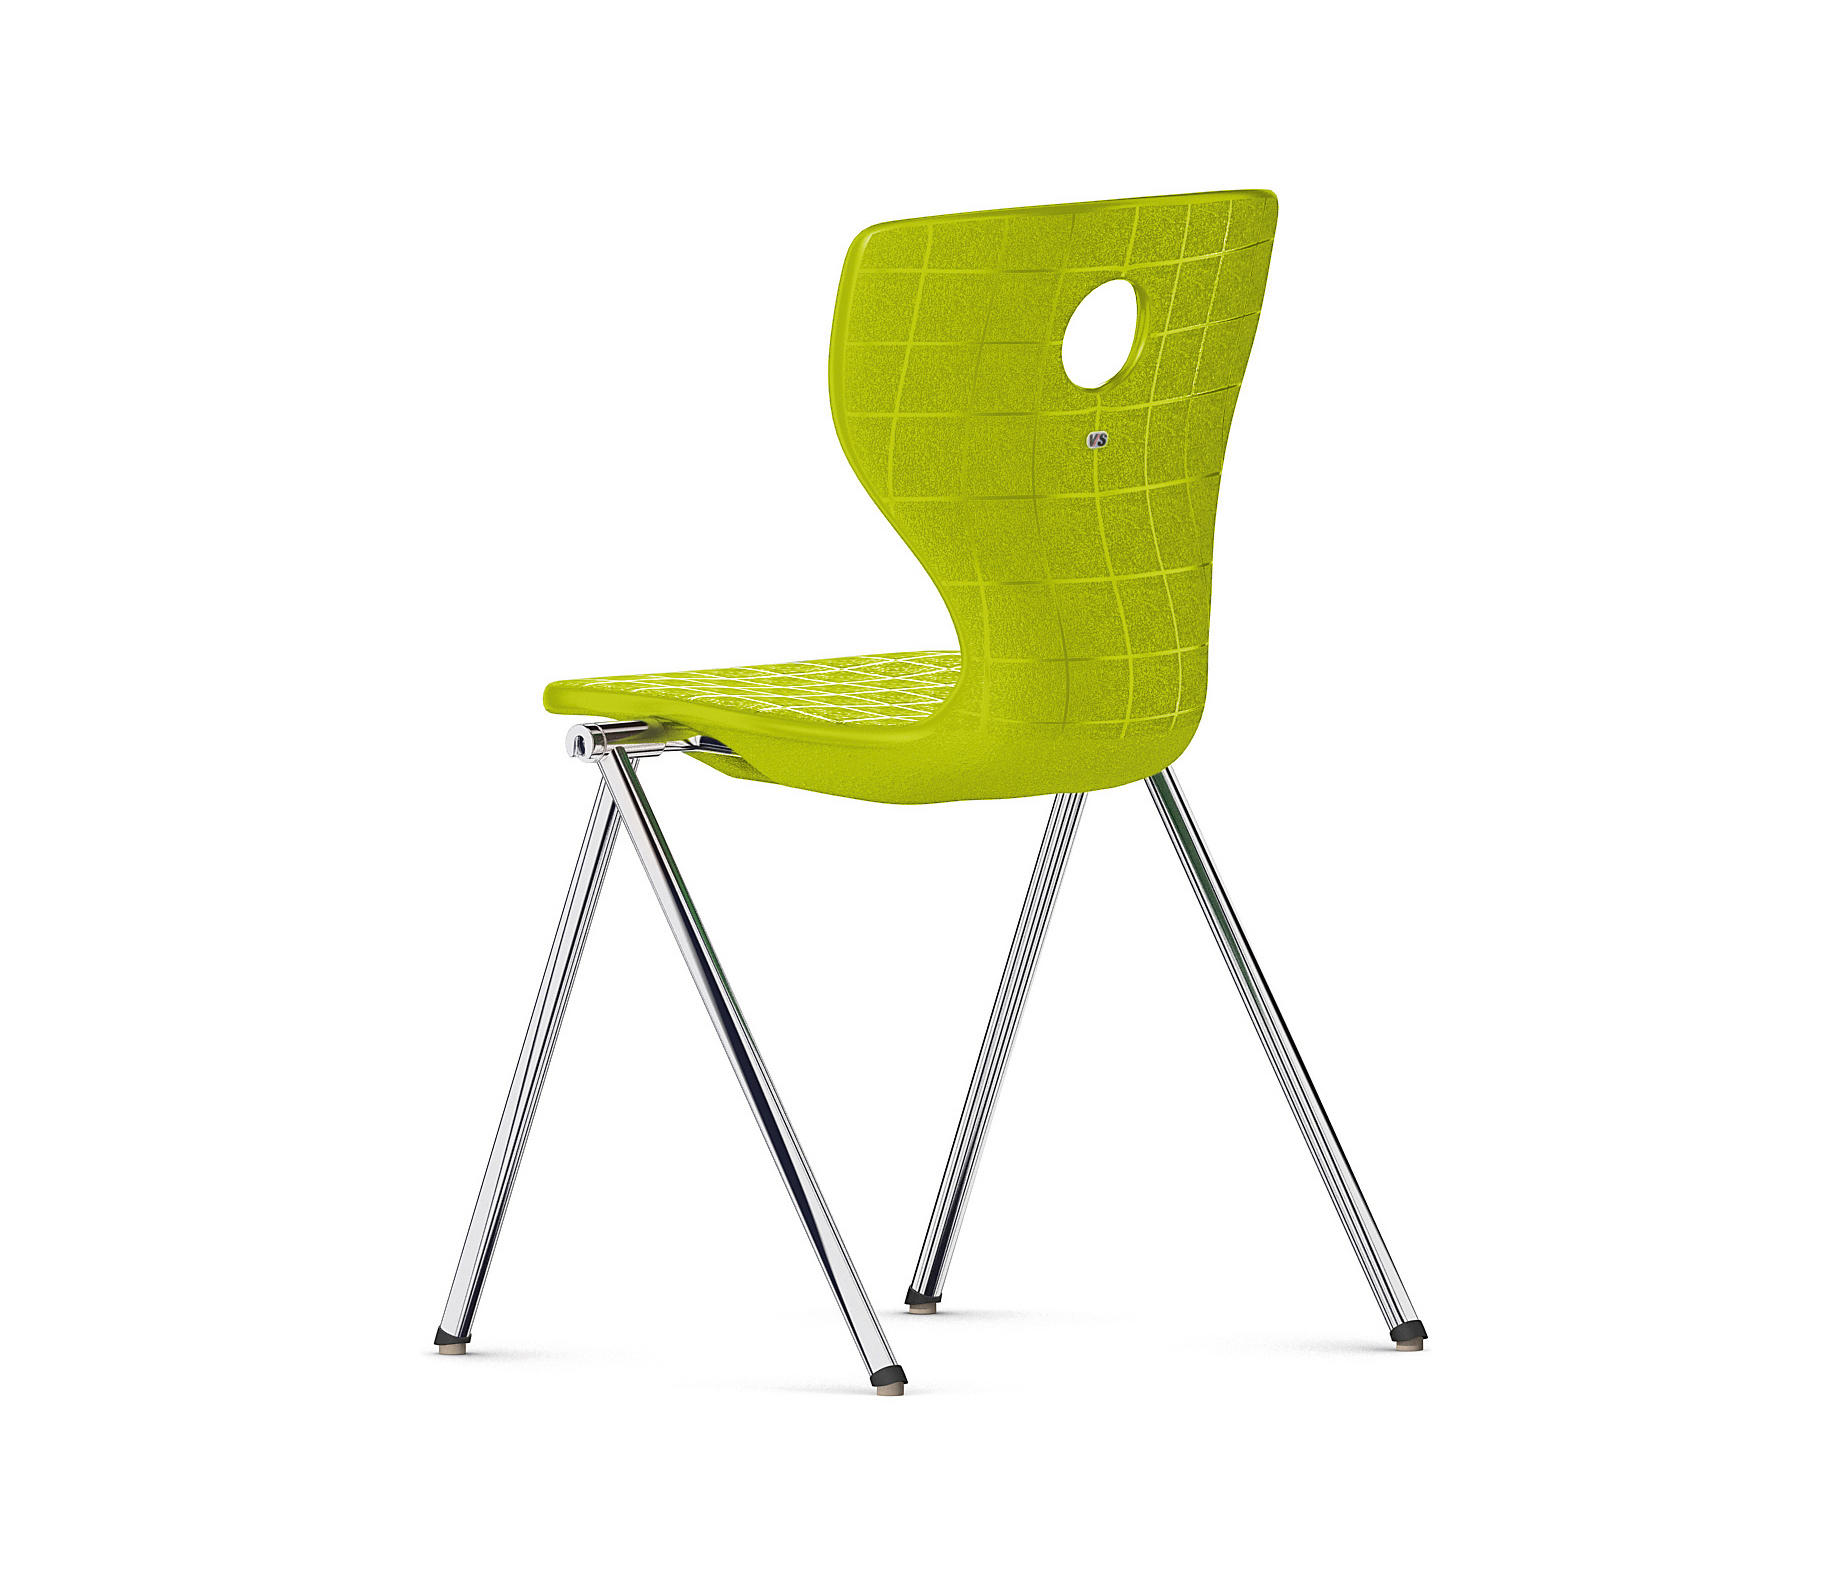 Pantofour lupo mehrzweckst hle von vs architonic for Chair vs chairman